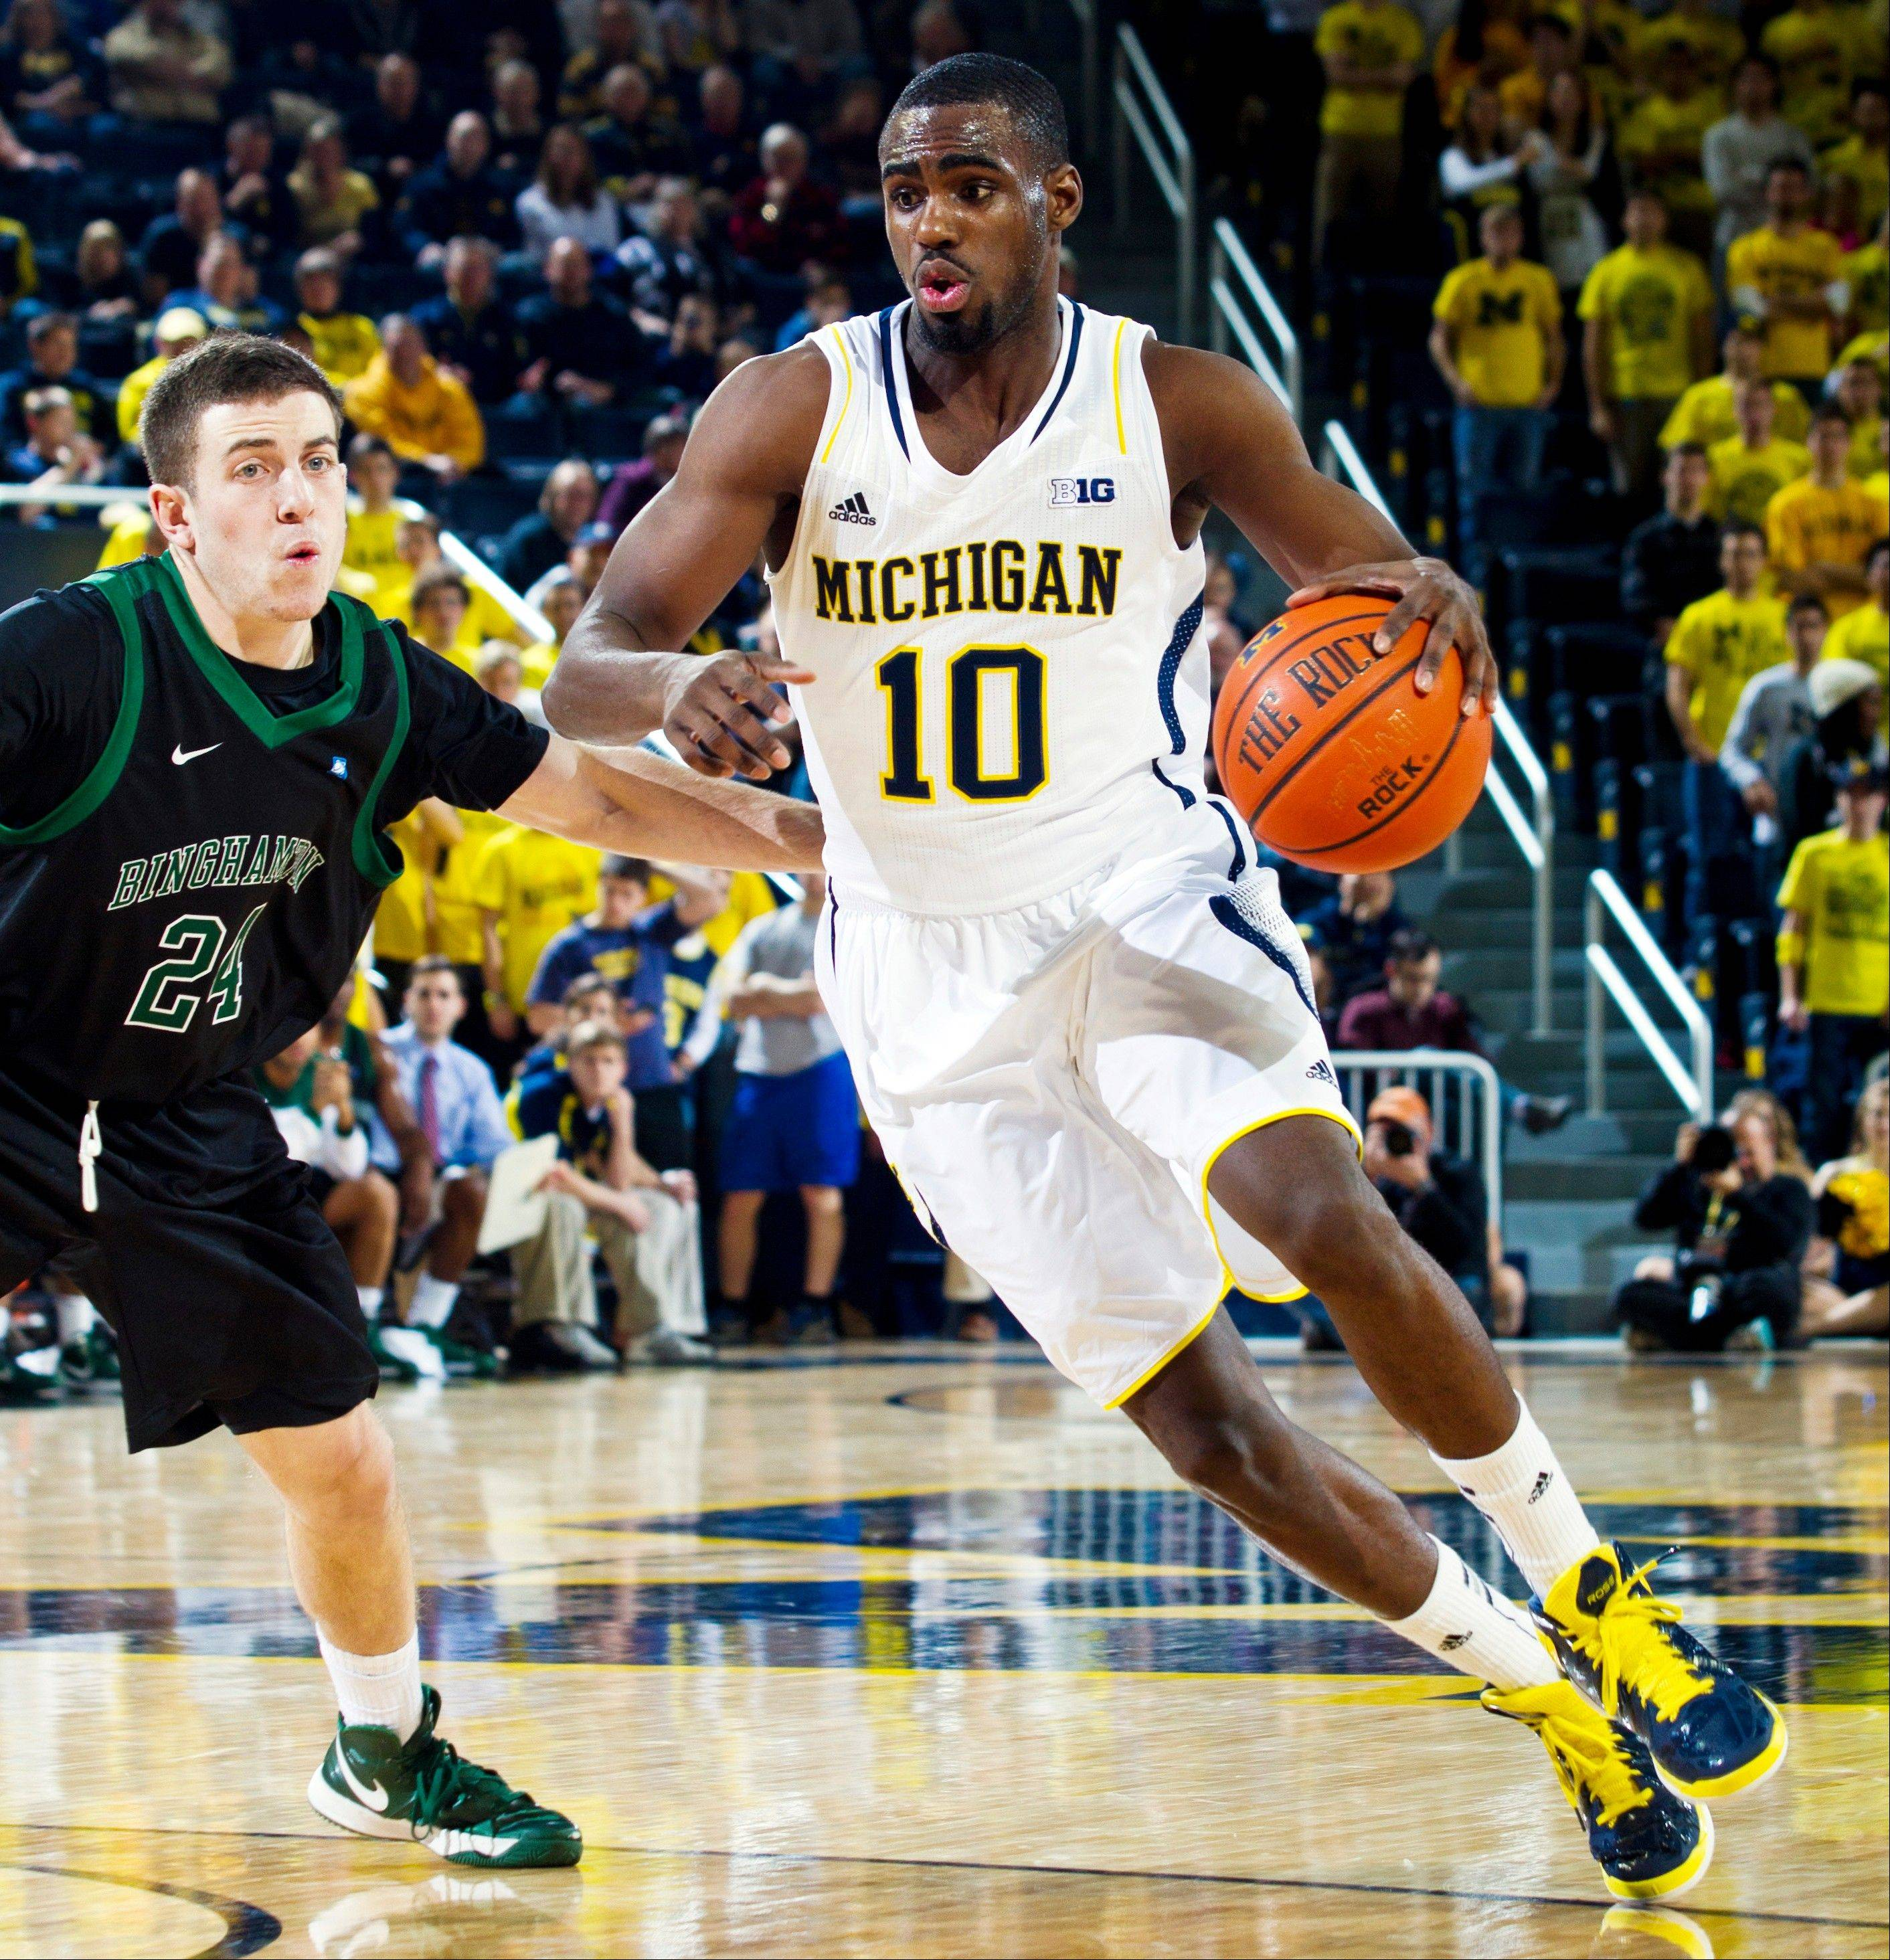 Binghamton guard Mike Horn defends against Michigan guard Tim Hardaway Jr., Tuesday during the second half at Crisler Center in Ann Arbor, Mich. Michigan won 67-39.